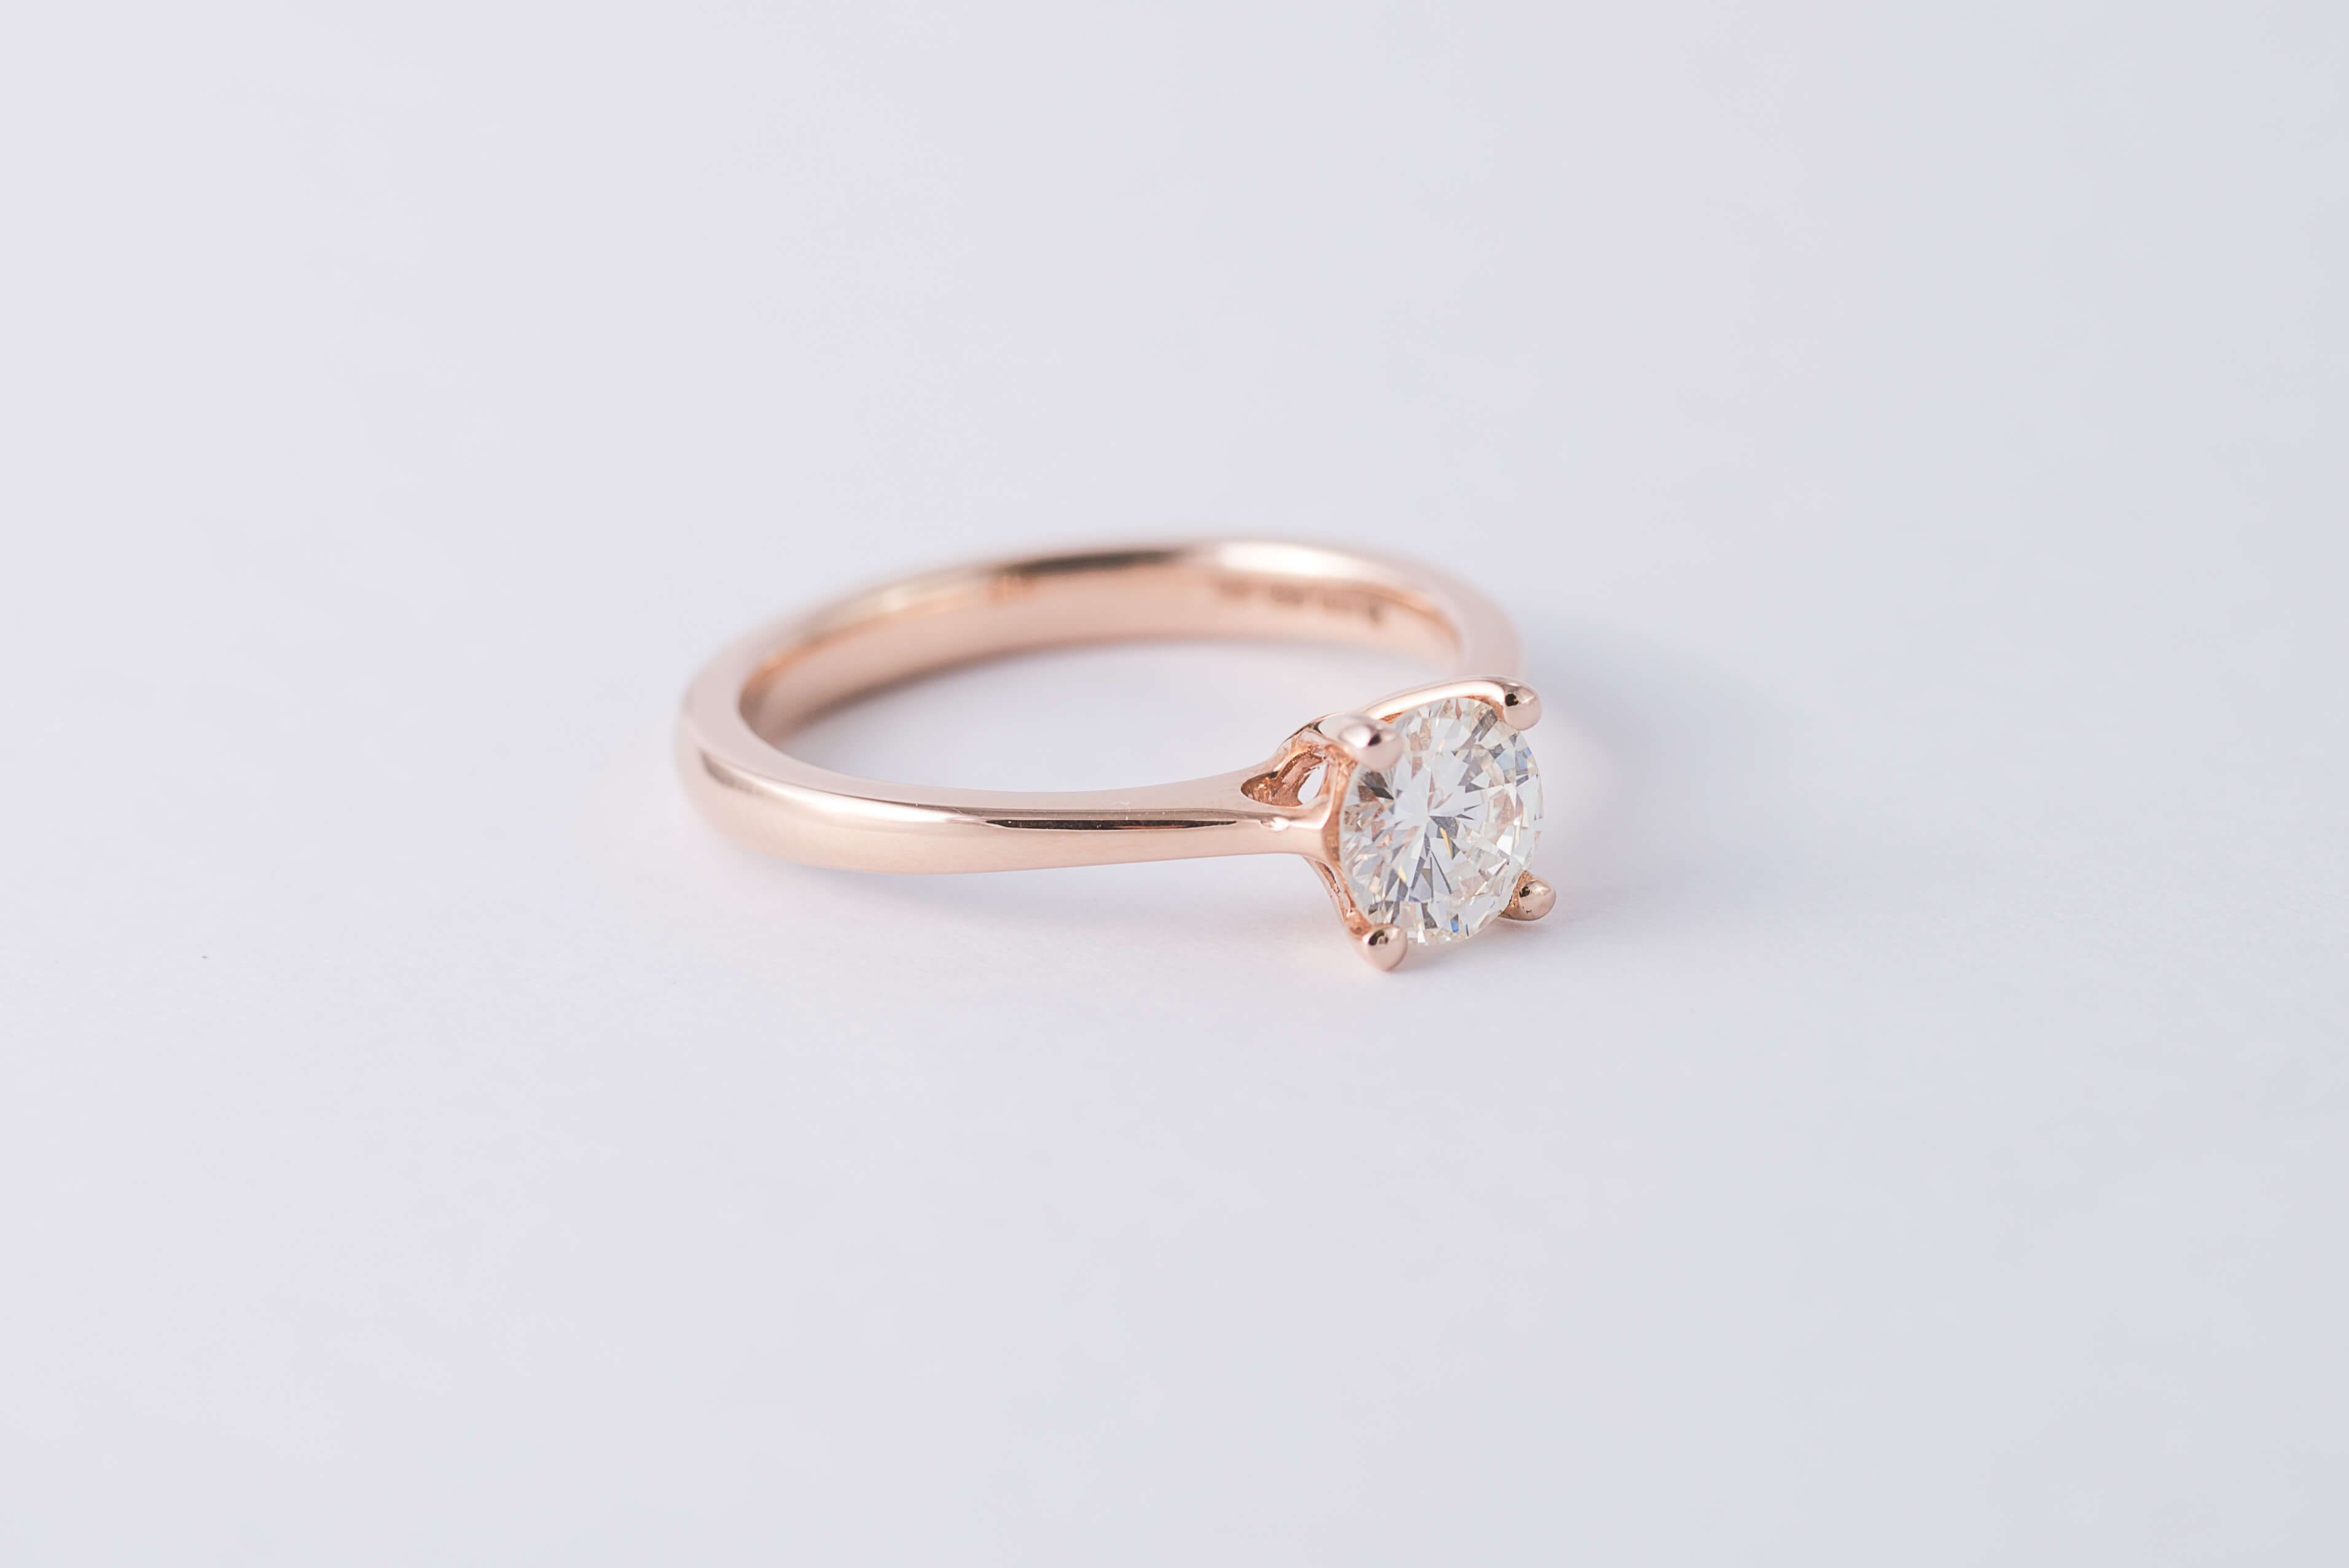 Engagement Ring Sale Jewellery Sales And Specials Pinterest